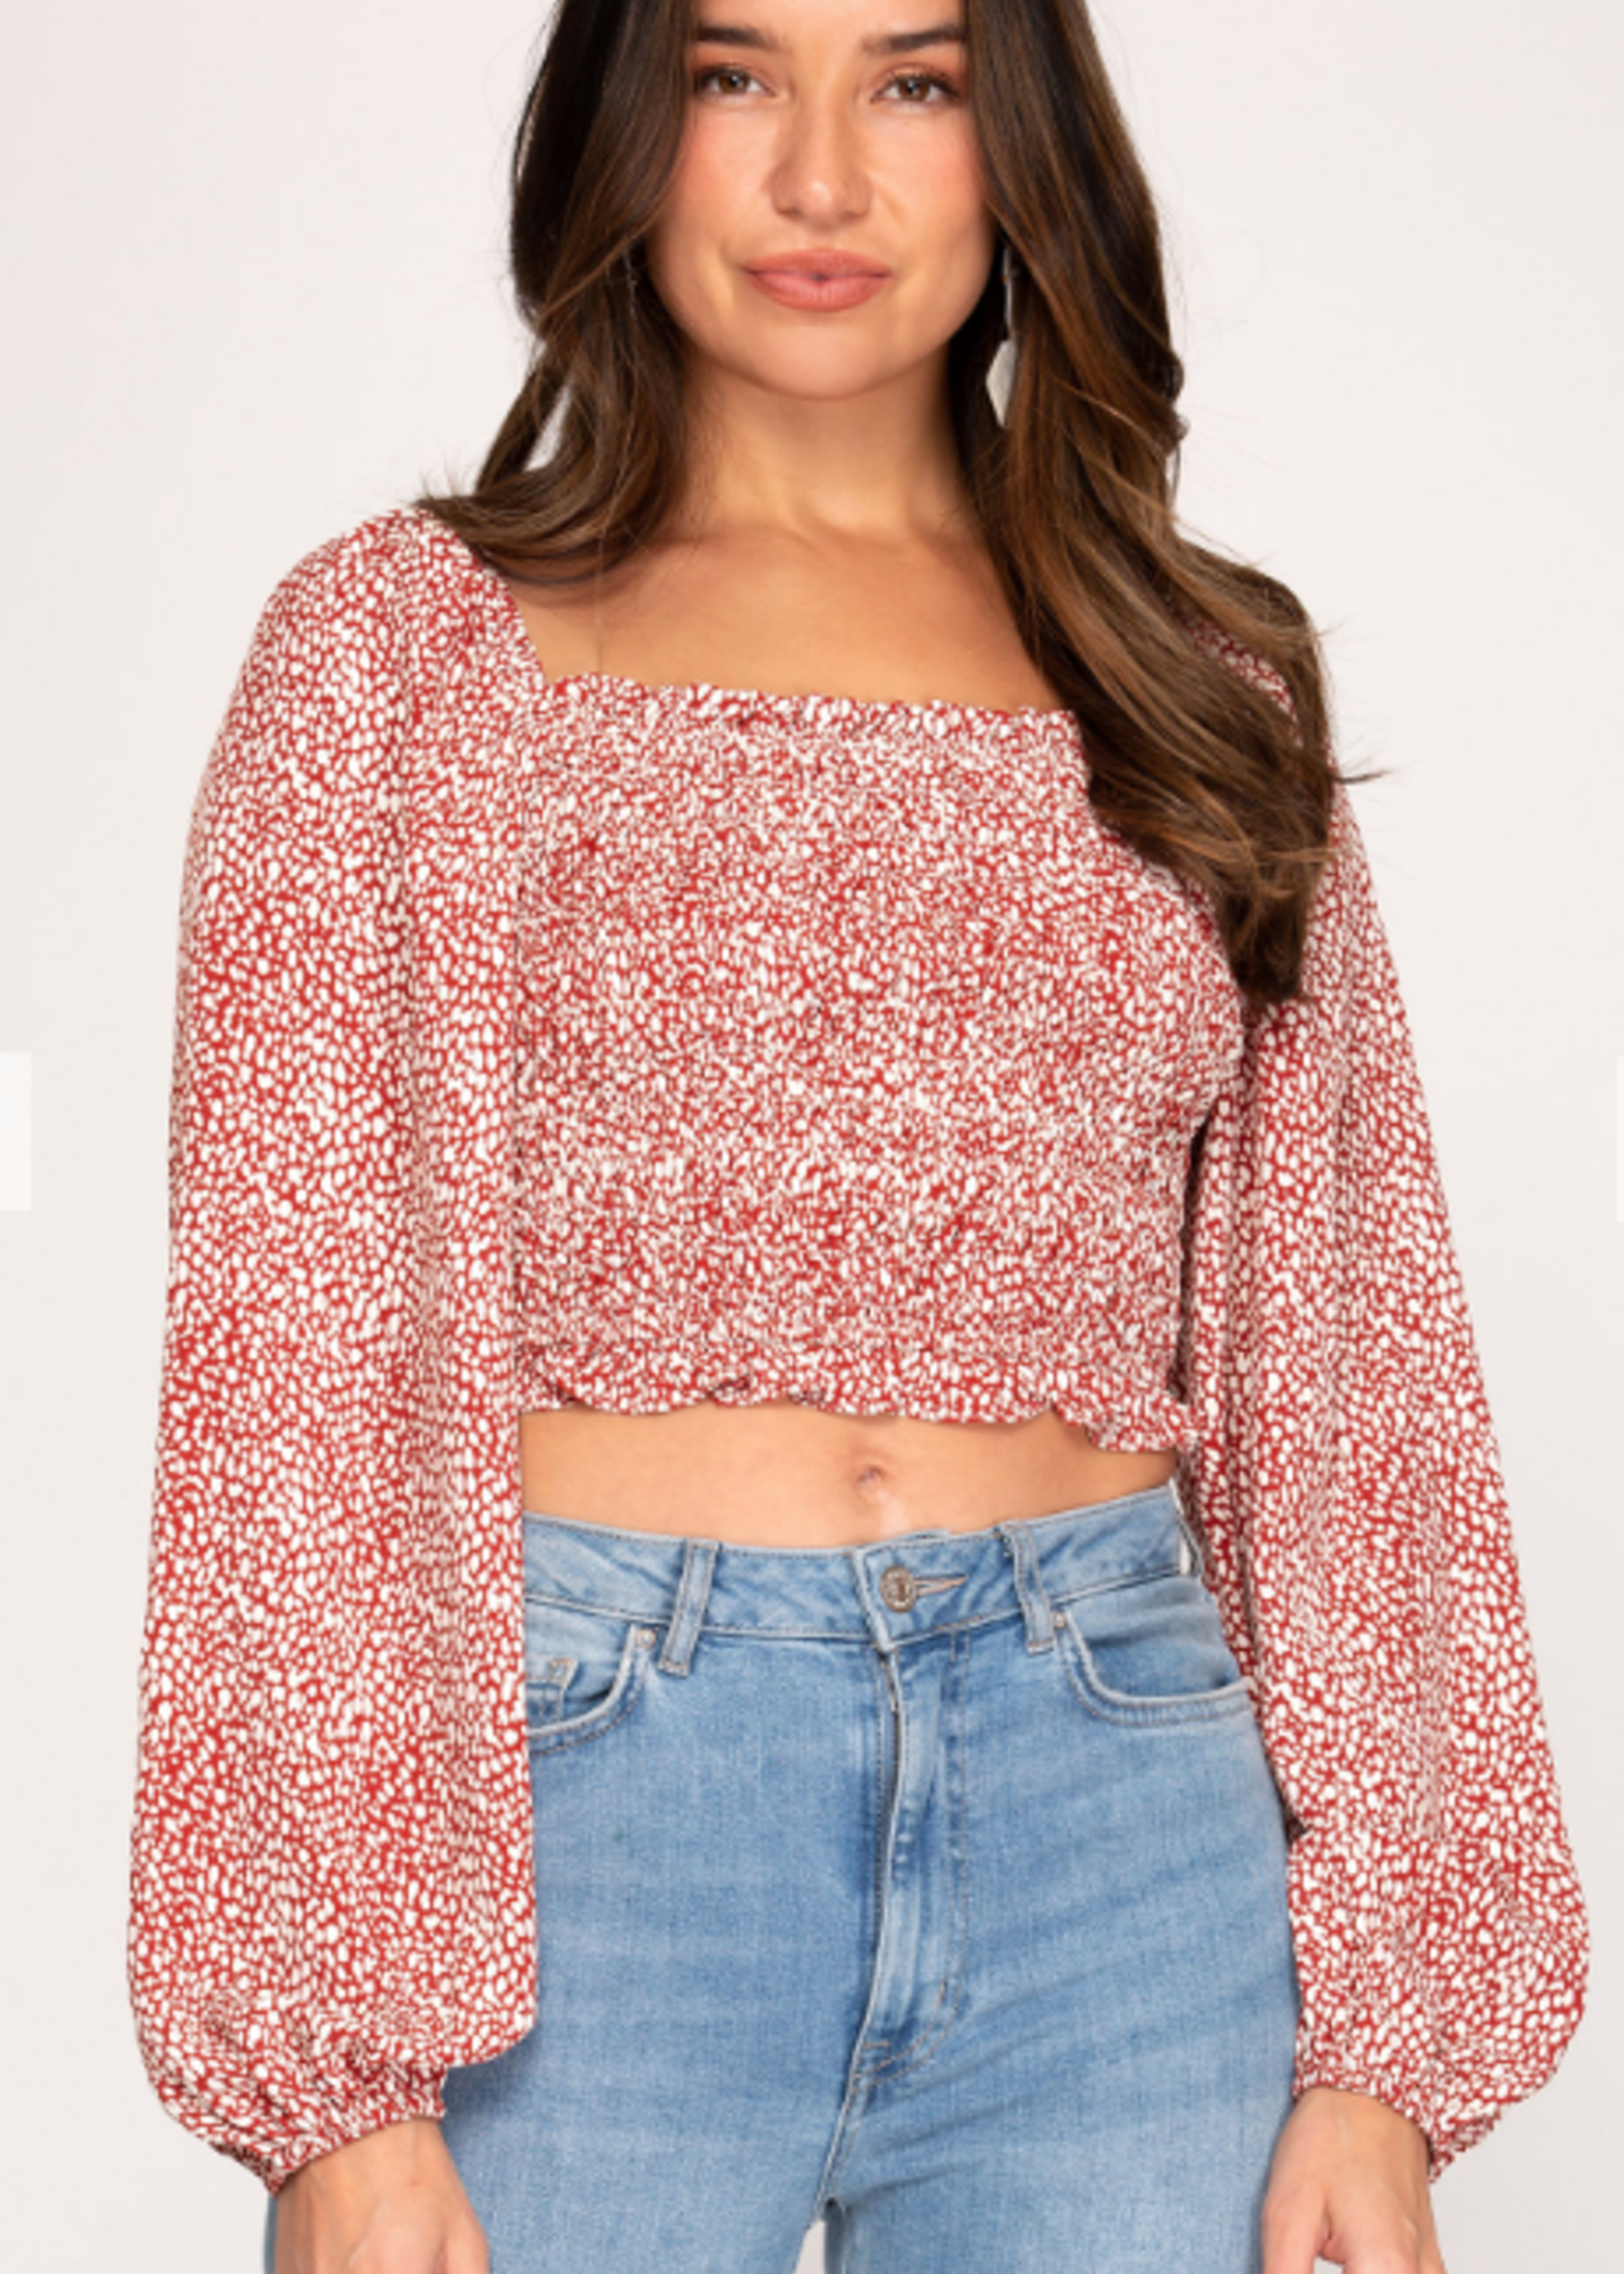 Best Of All Fall Top